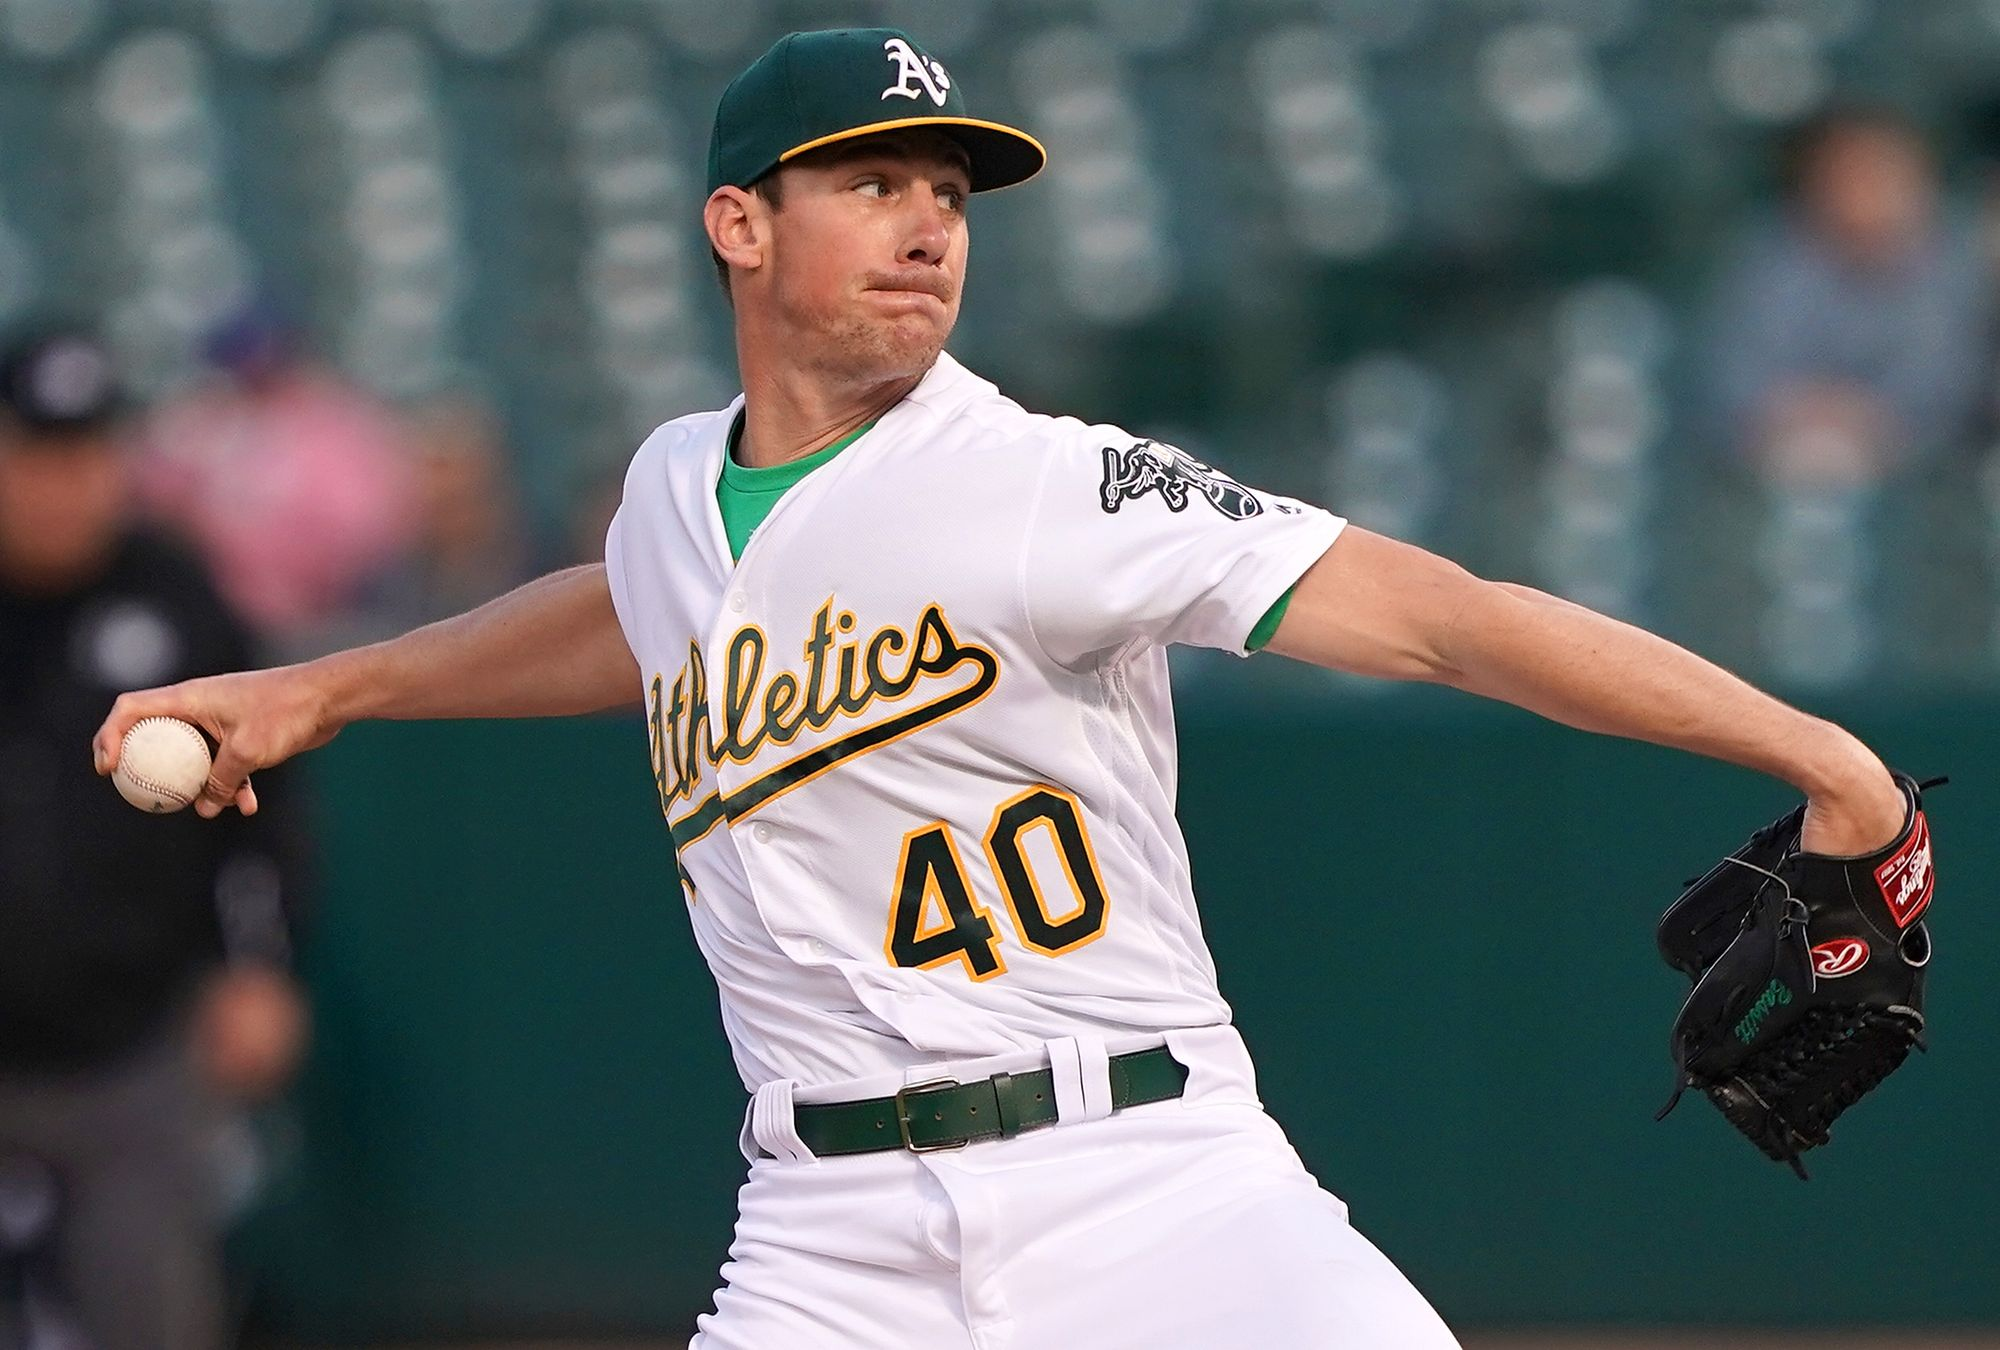 A's Pitcher Hits Cheating Houston Astro With Pitch, Oakland Crowd Roars with Approval